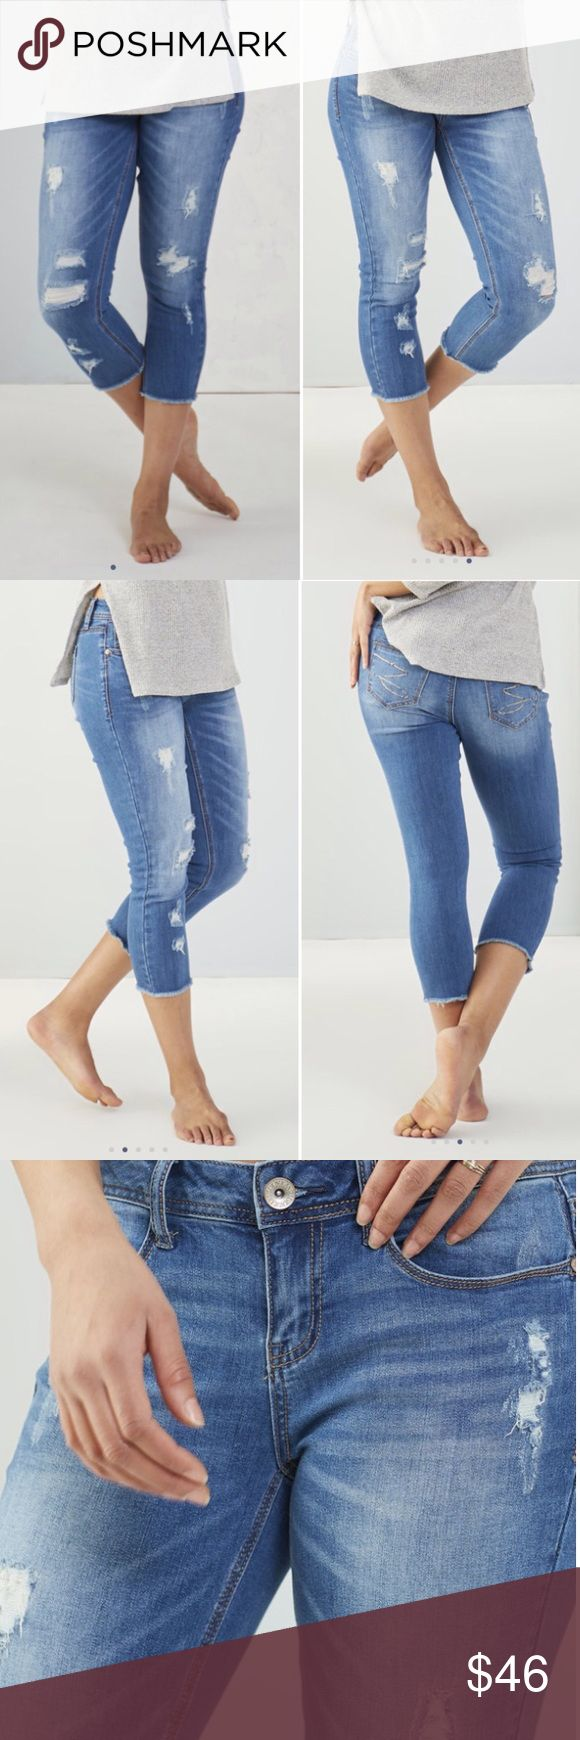 """Hawthorn Rip & Repair Crop Jeans Brand new with tag. The cropped style of these jeans allow your footwear to be the star of your ensemble. Pair with your favorite booties or sandals for a chic warm-weather style. 98% cotton and 2% spandex. Slim straight. Measurement laying flat: for size 12 - waist: 18"""" inseam: 23"""" length: 33"""". For size 14 - waist: 19"""" inseam: 23"""" length: 33"""" Seven7 Pants Capris"""